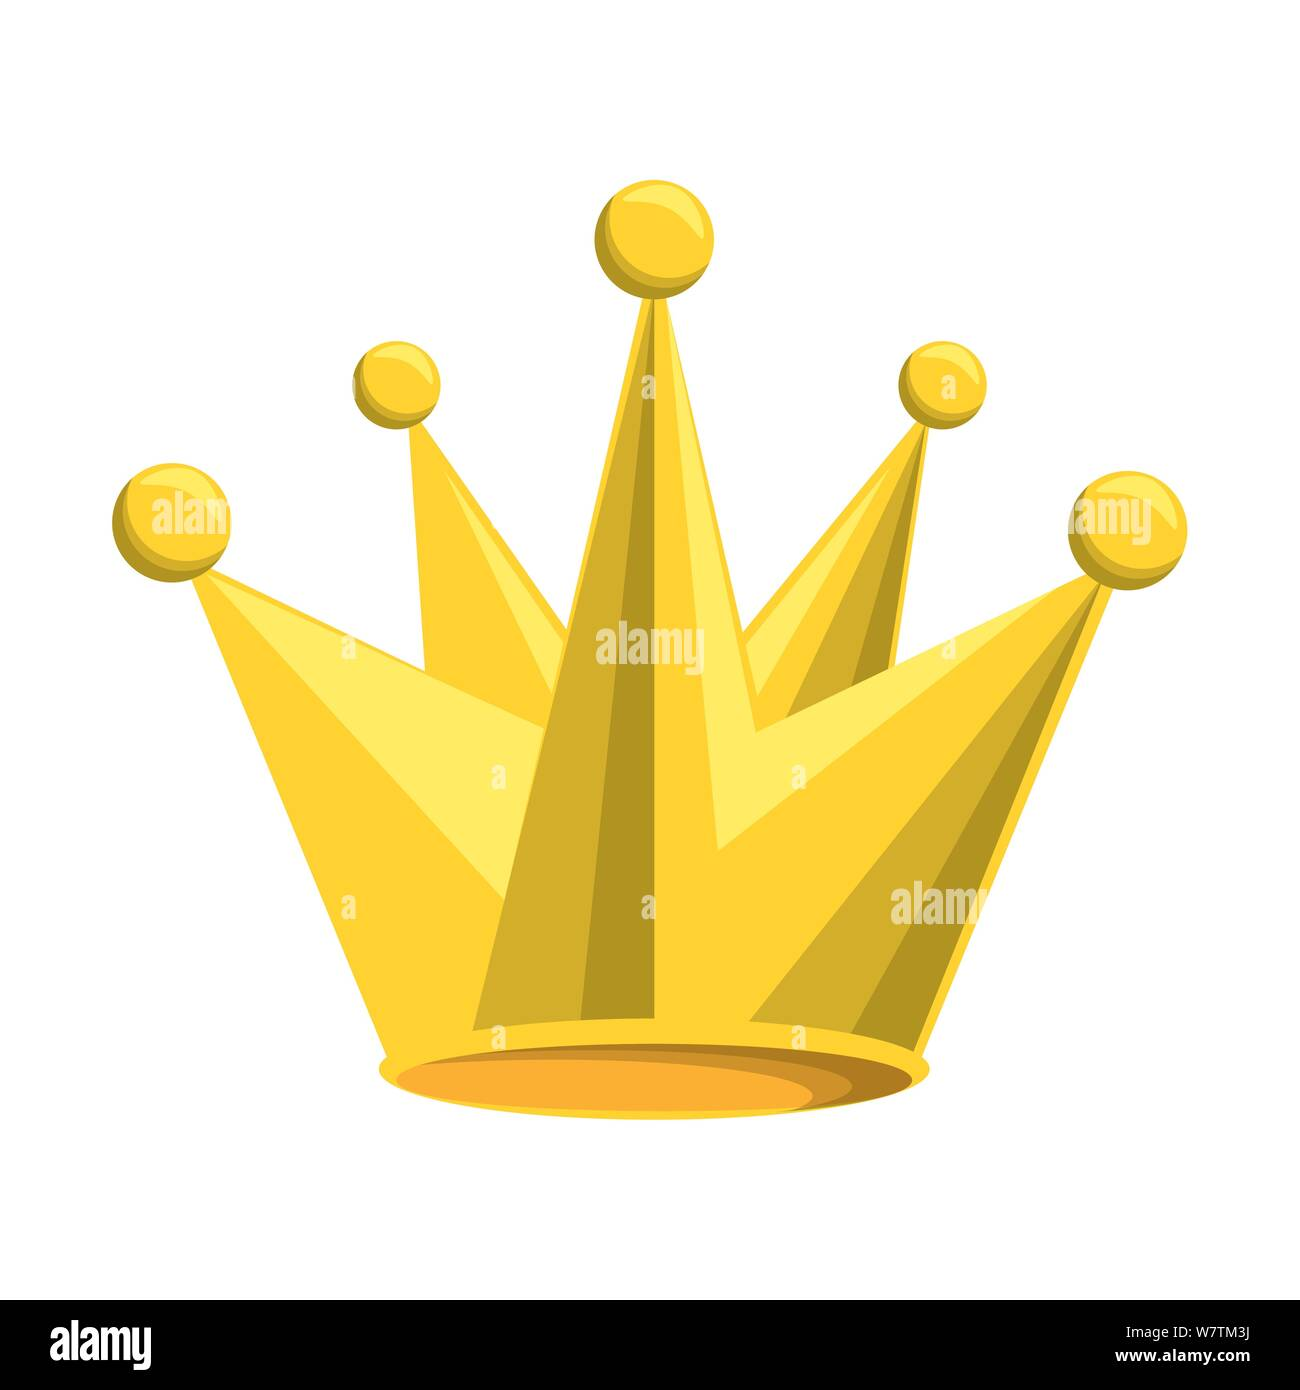 King Crown Royal Luxury Cartoon Stock Vector Image Art Alamy Premium stock photo of cartoon royal crown. https www alamy com king crown royal luxury cartoon image263000742 html